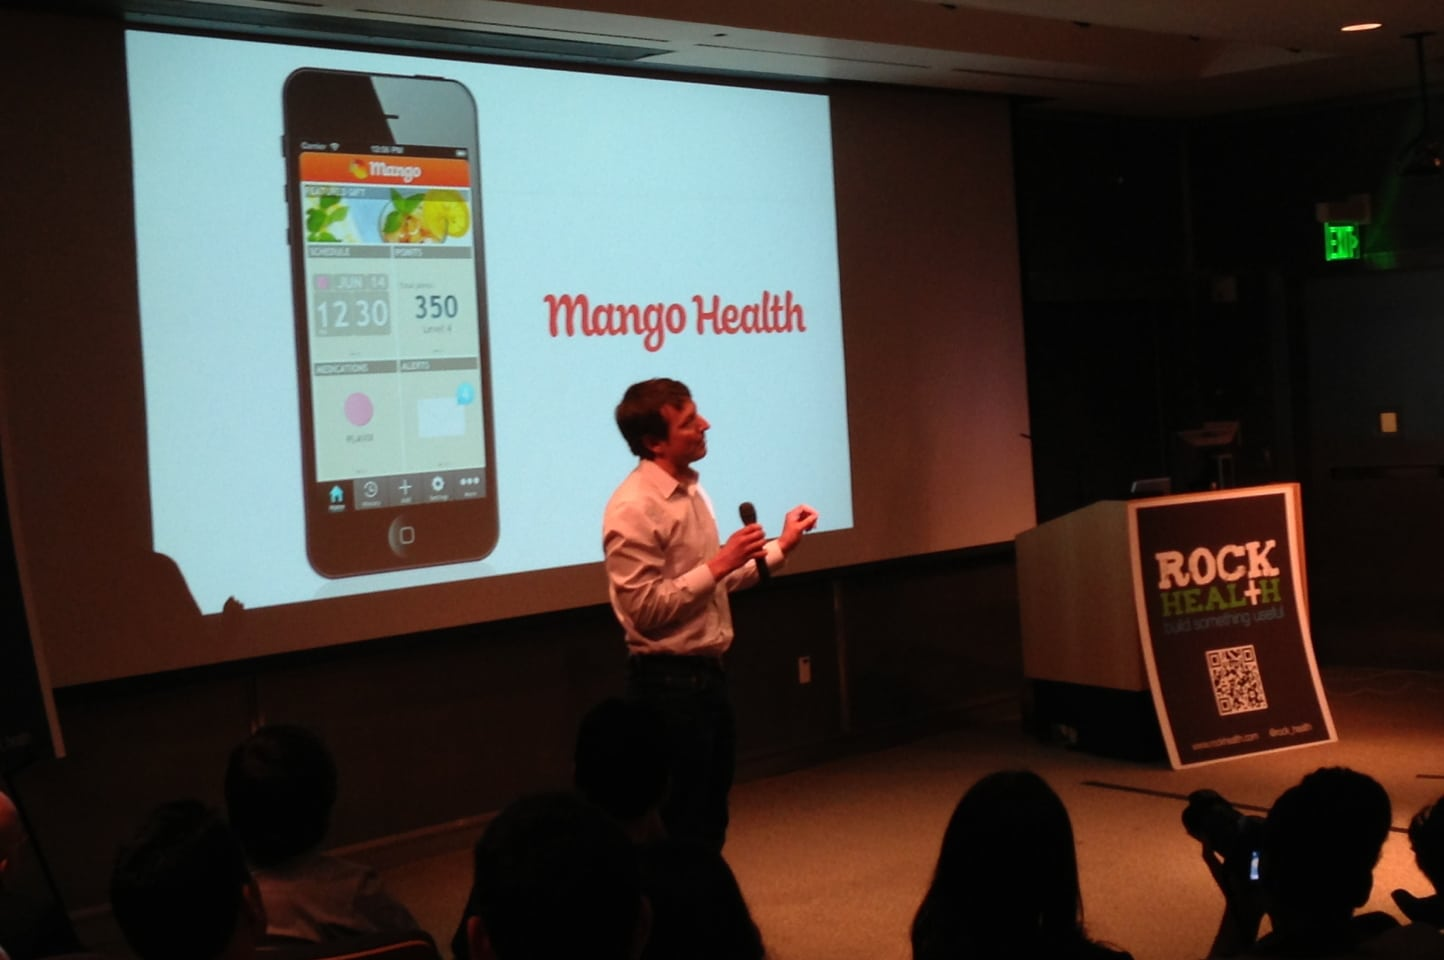 MangoHealth (1 of 2)